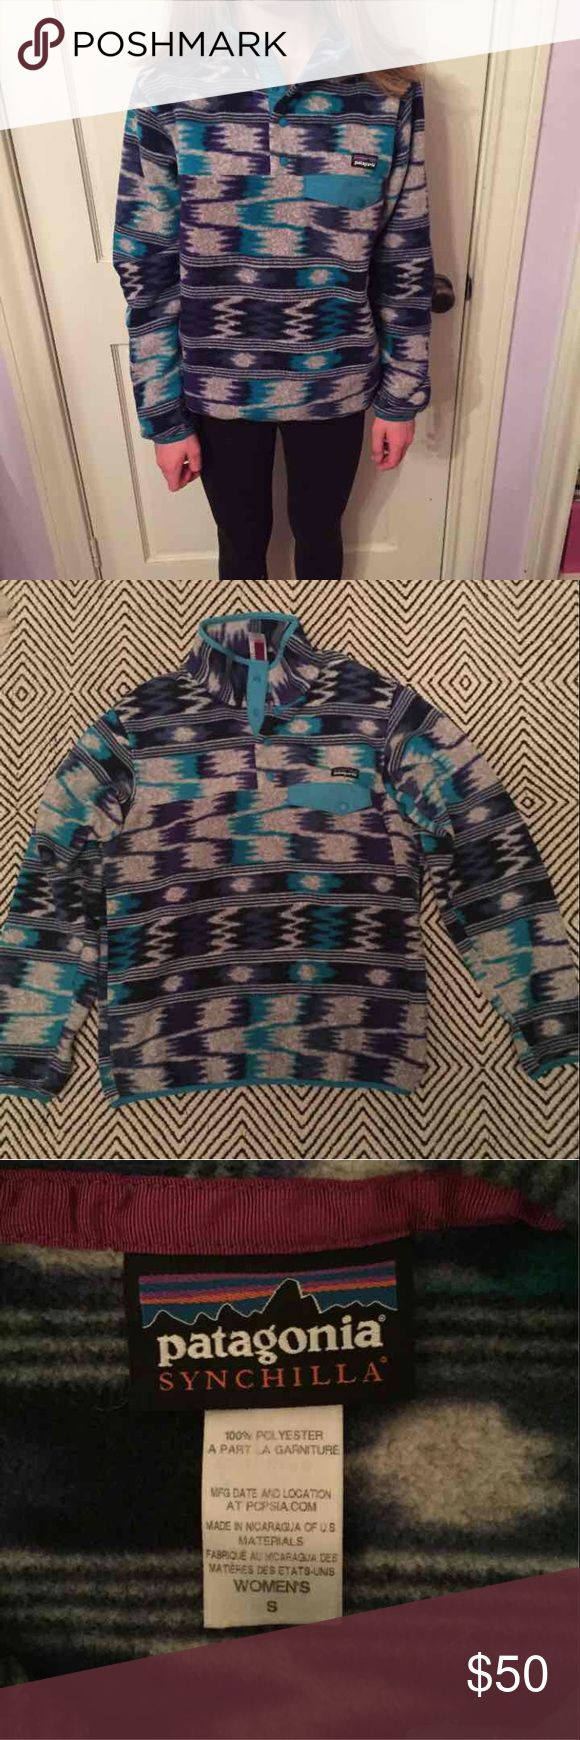 Patagonia synchilla jacket Lightly worn, in great condition, super comfy and soft!! Patagonia Jackets & Coats